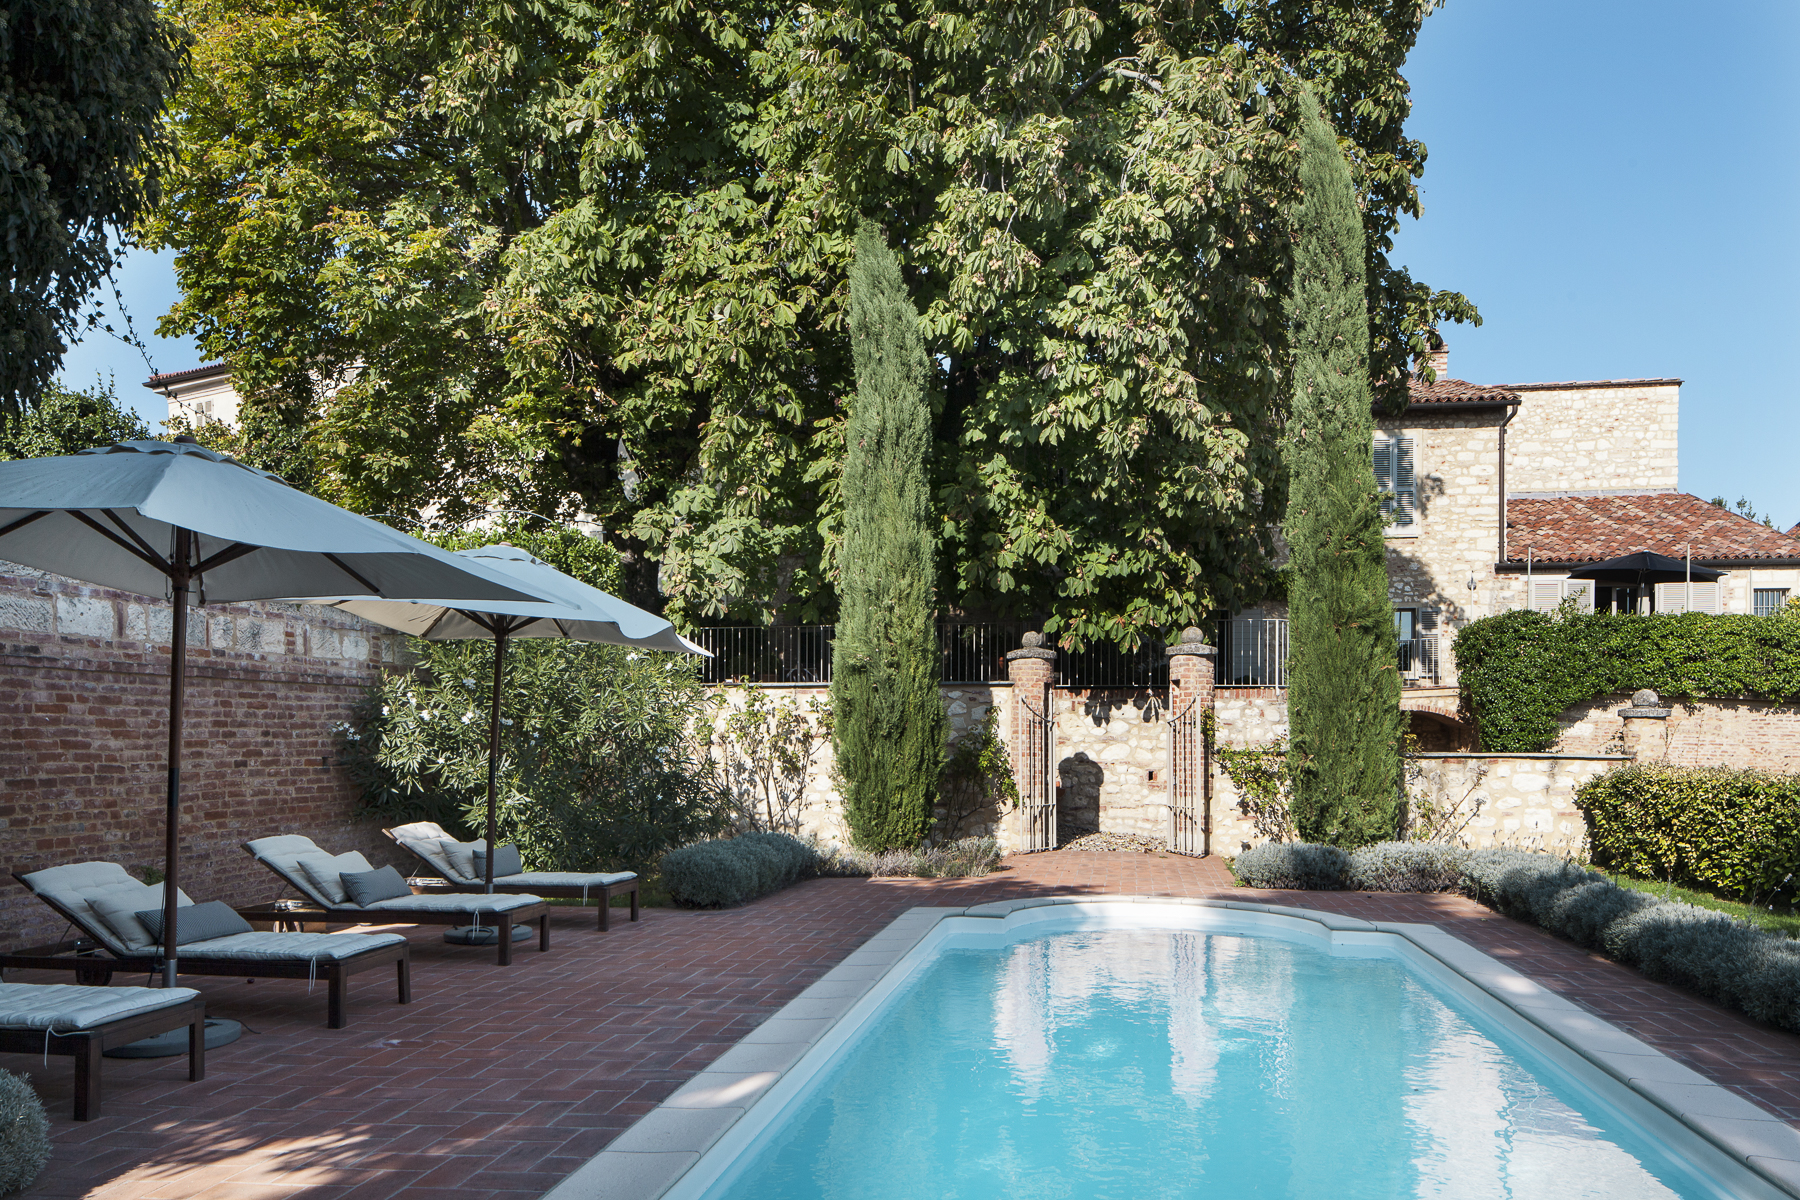 Additional photo for property listing at Refined villa in Monferrato with a swimming pool Cella Monte, Alessandria Italy